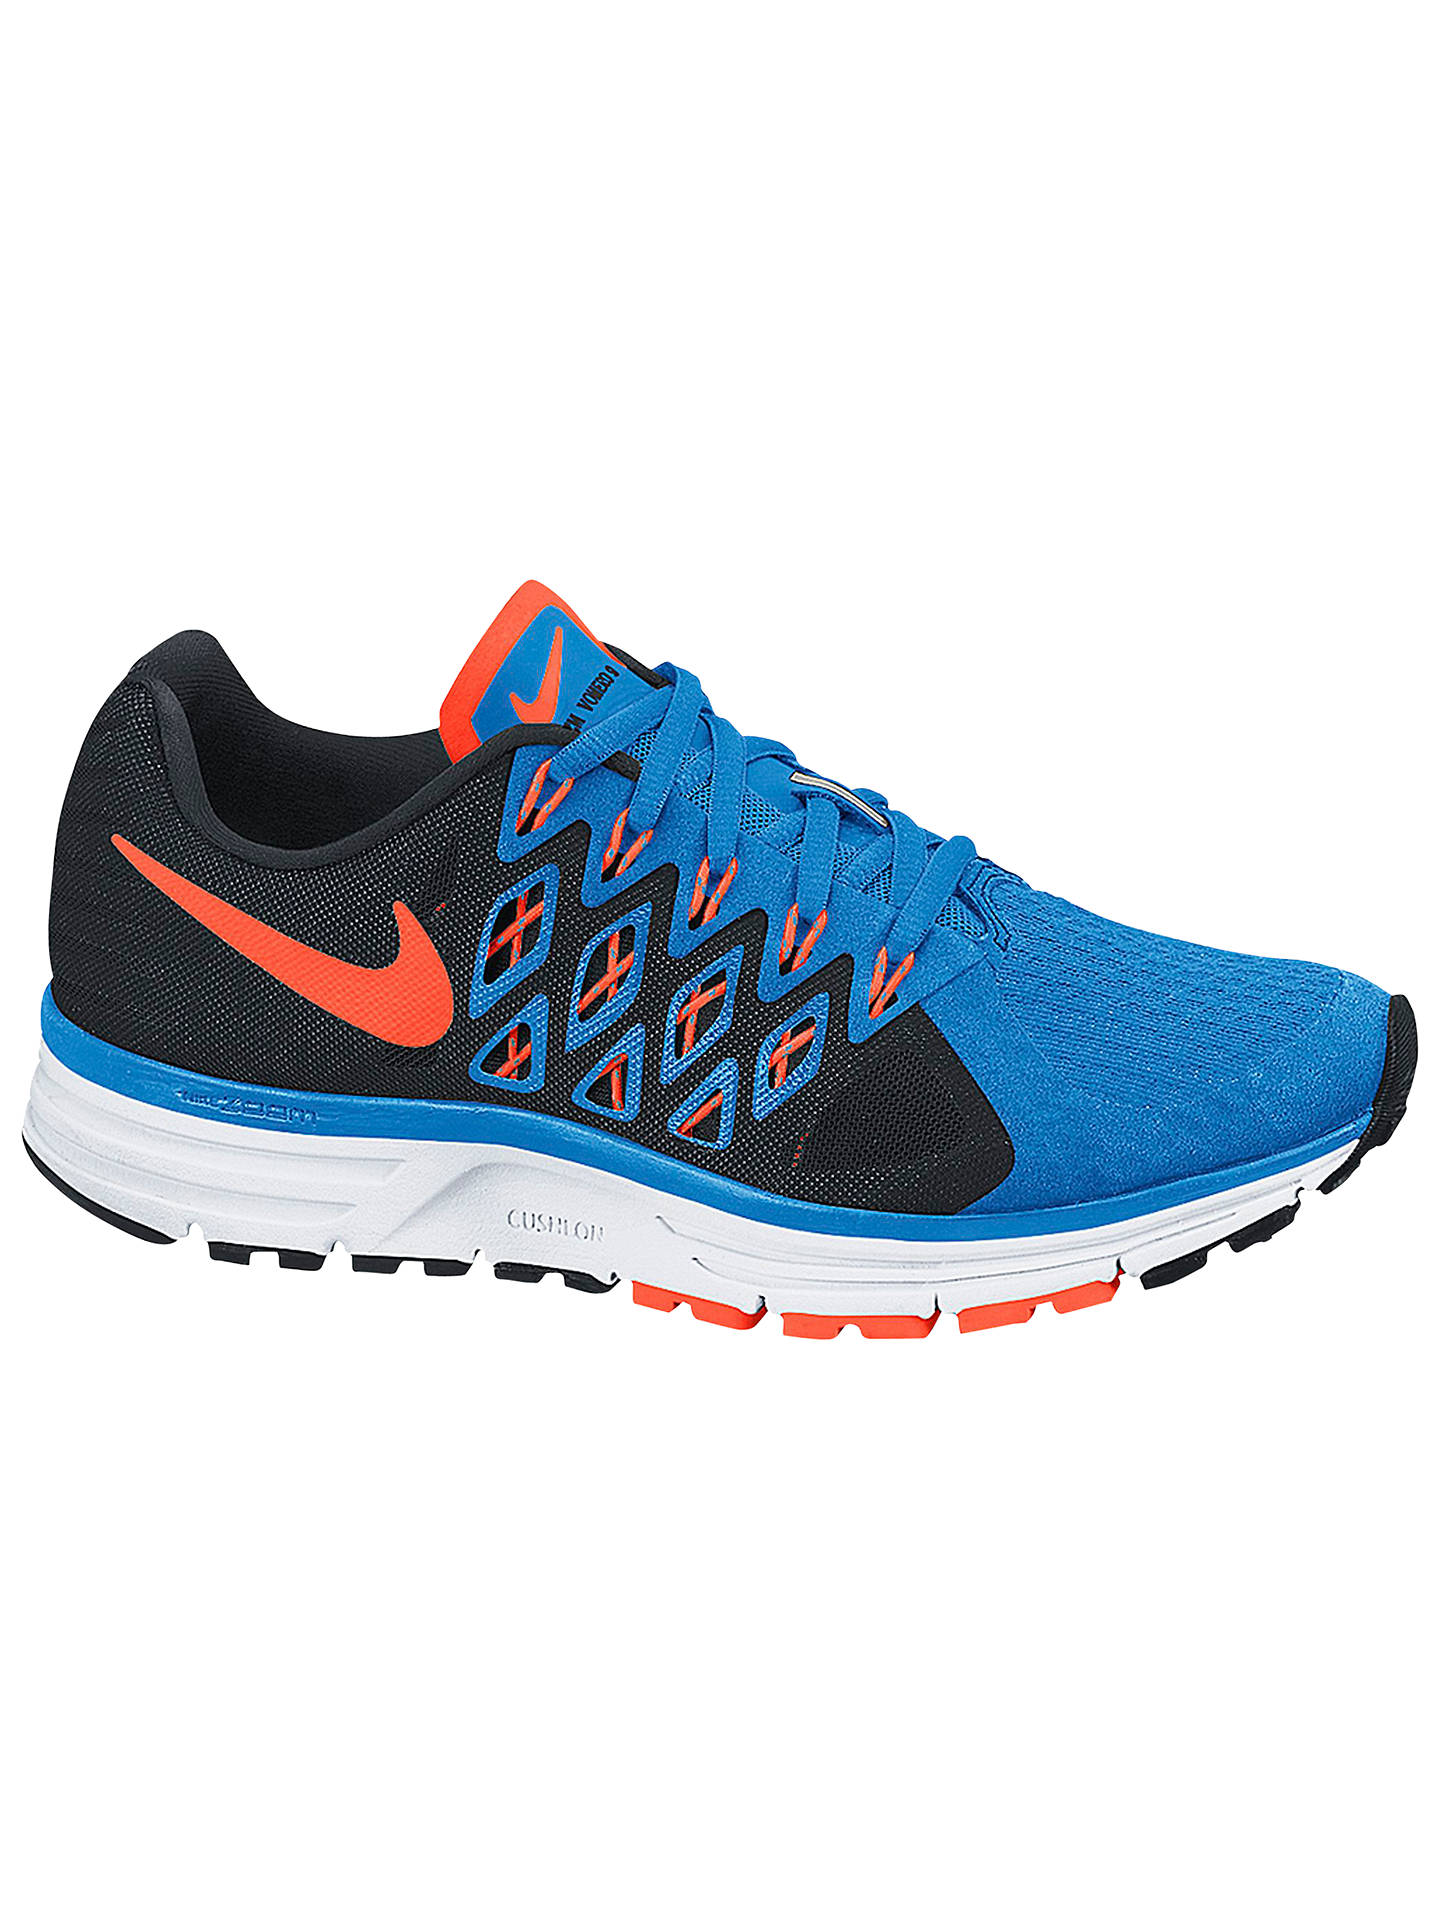 df8dad7ff34a Buy Nike Zoom Vomero 9 Men s Running Shoes